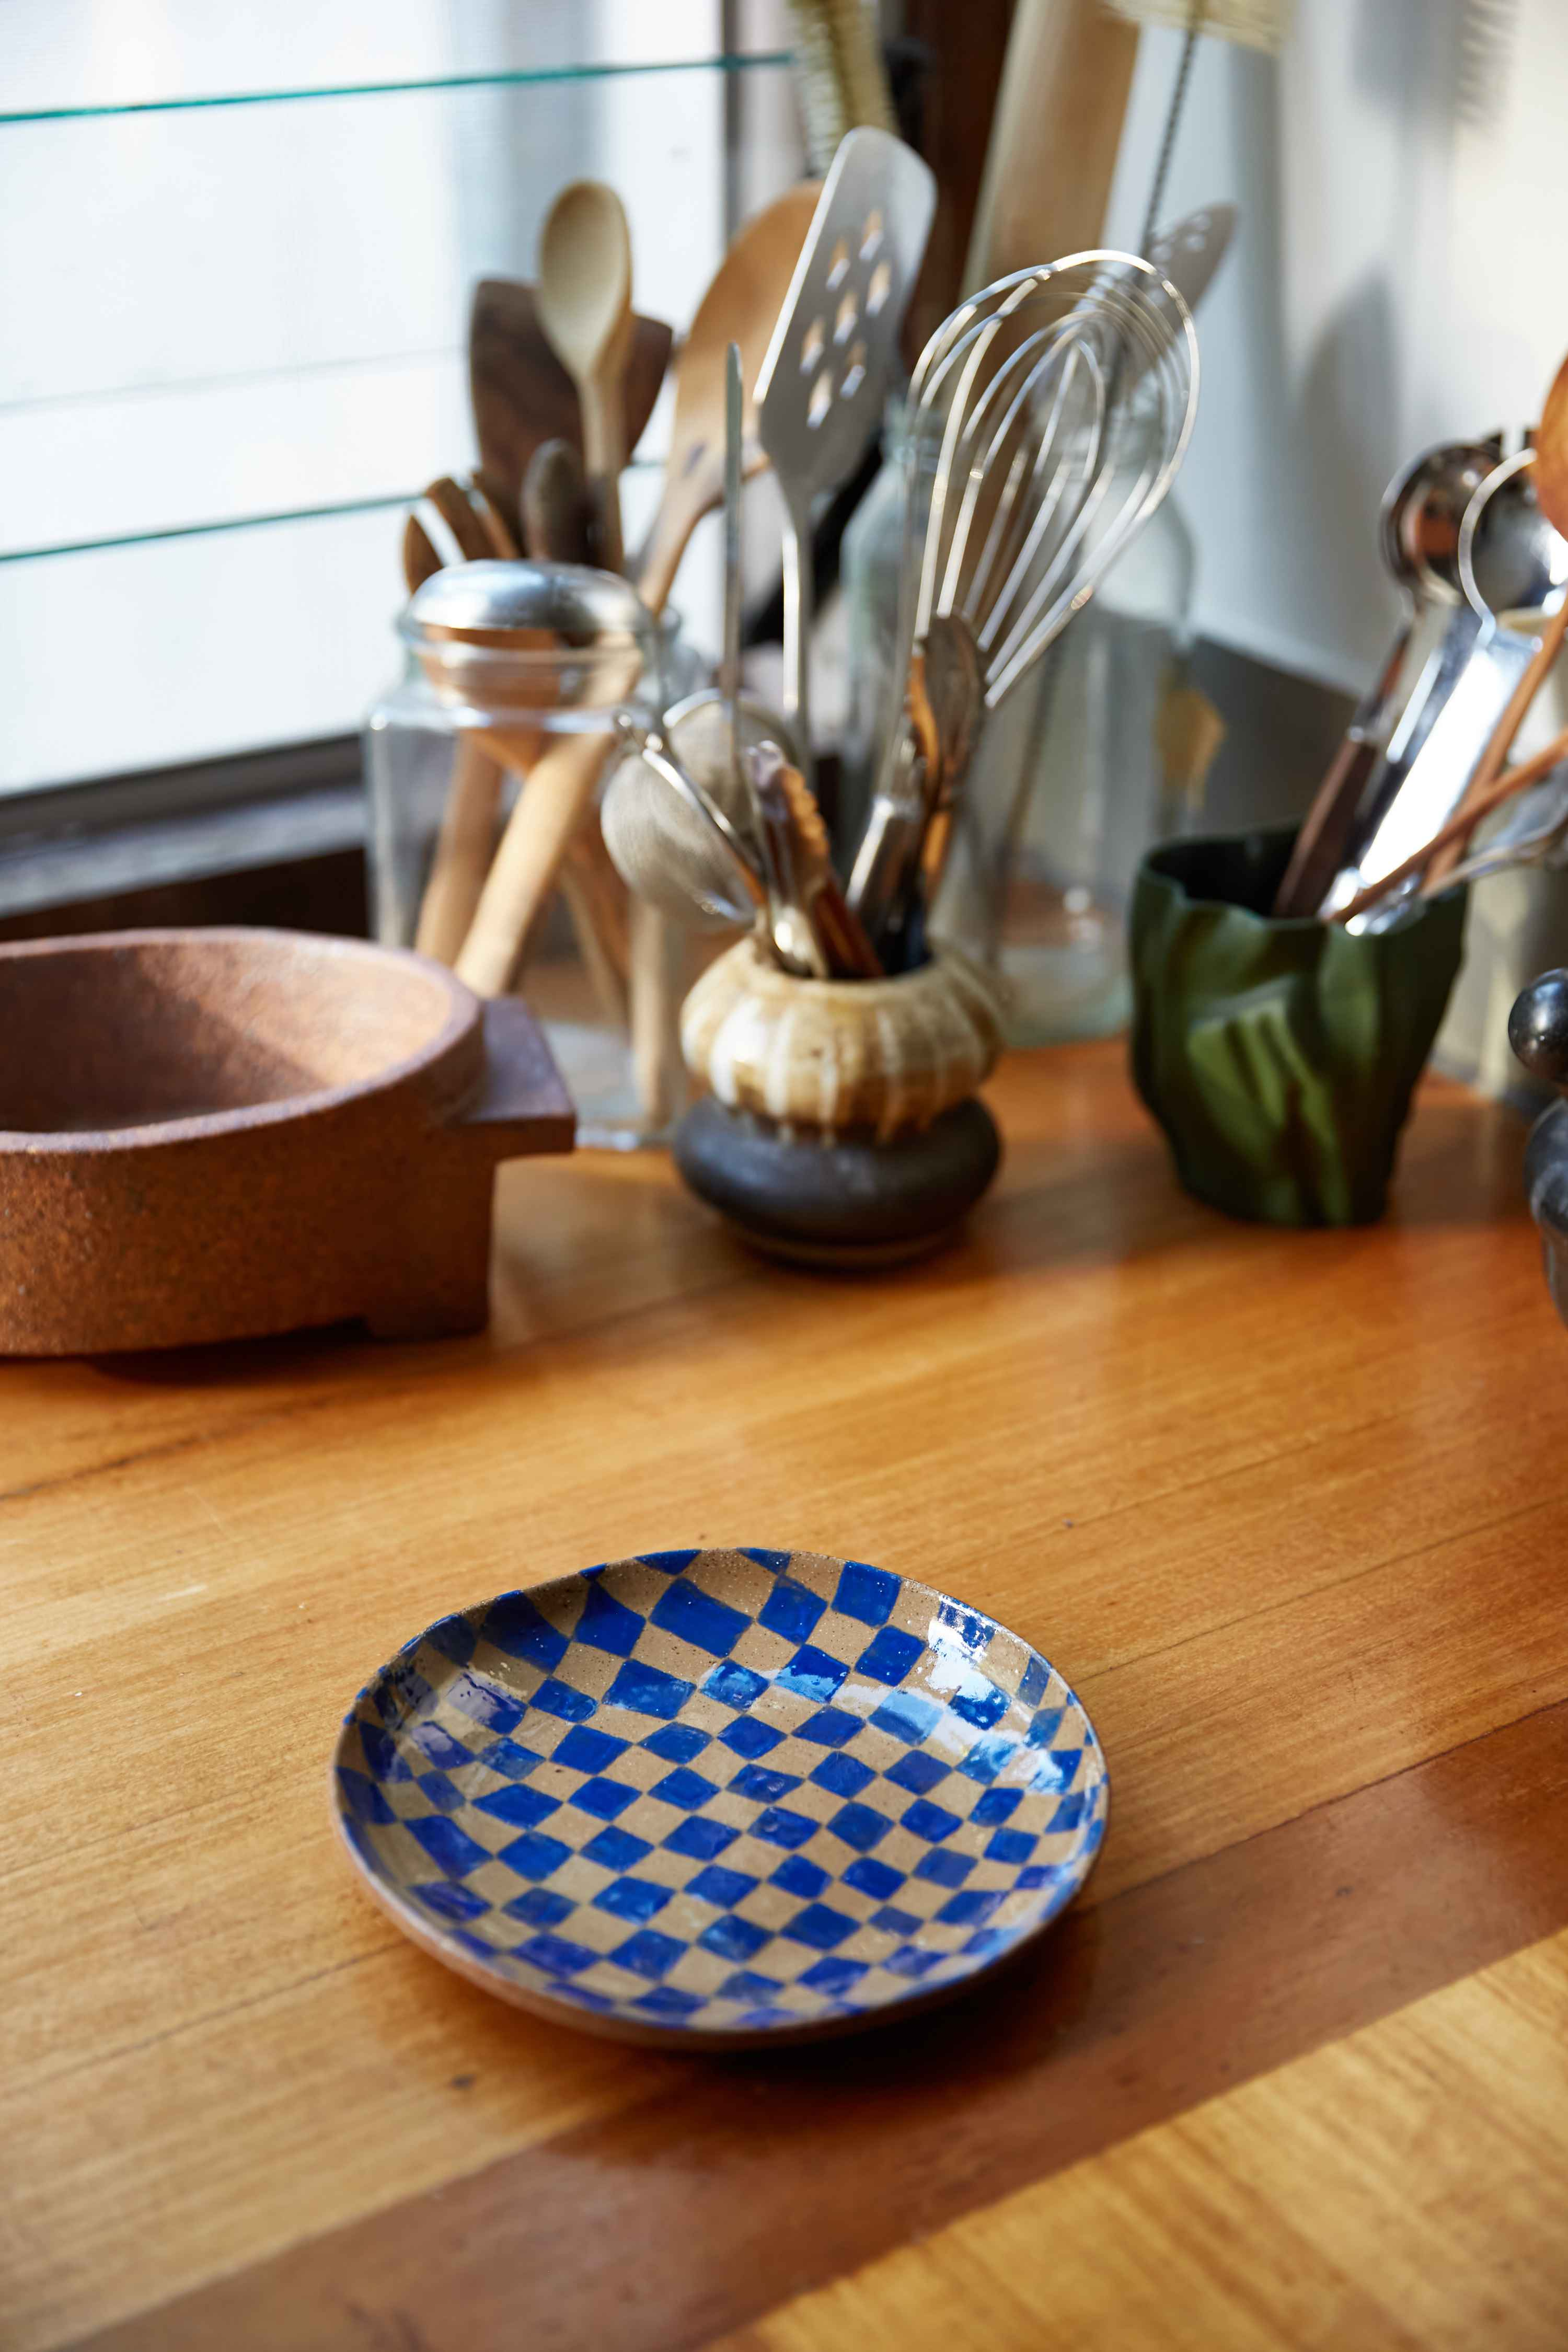 A selection of Soft Edge pieces: the 'Conversation Cup','Cup with Curves' and a side plate in Klein Blue